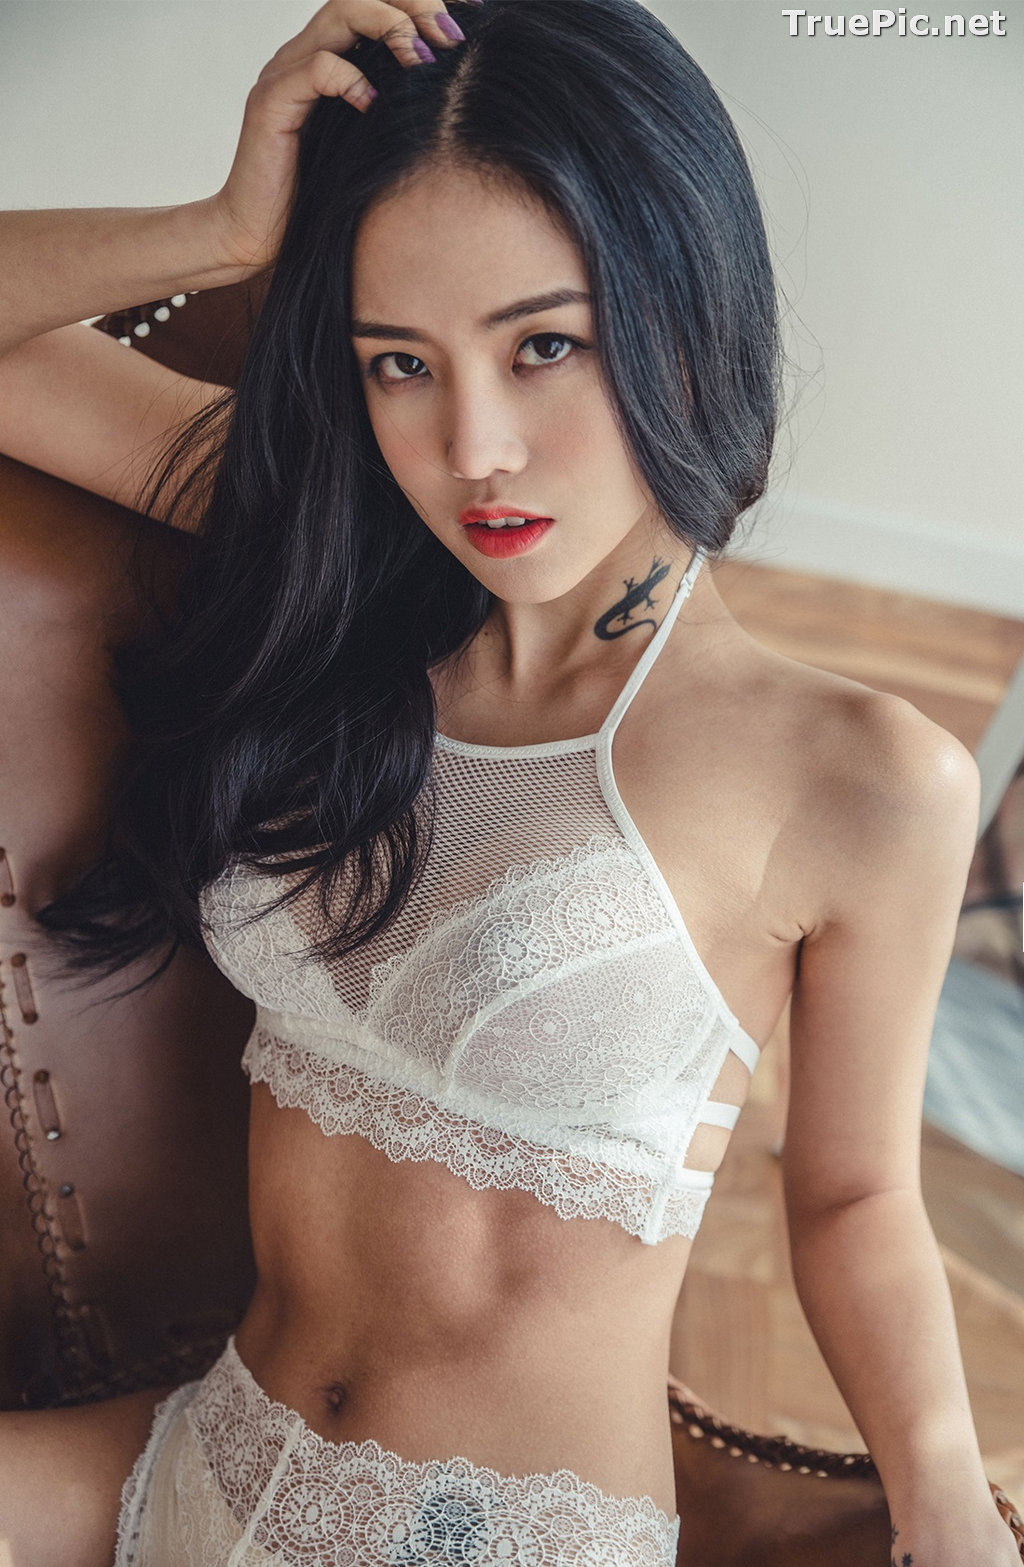 Image Korean Fashion Model – Baek Ye Jin – Sexy Lingerie Collection #6 - TruePic.net - Picture-7